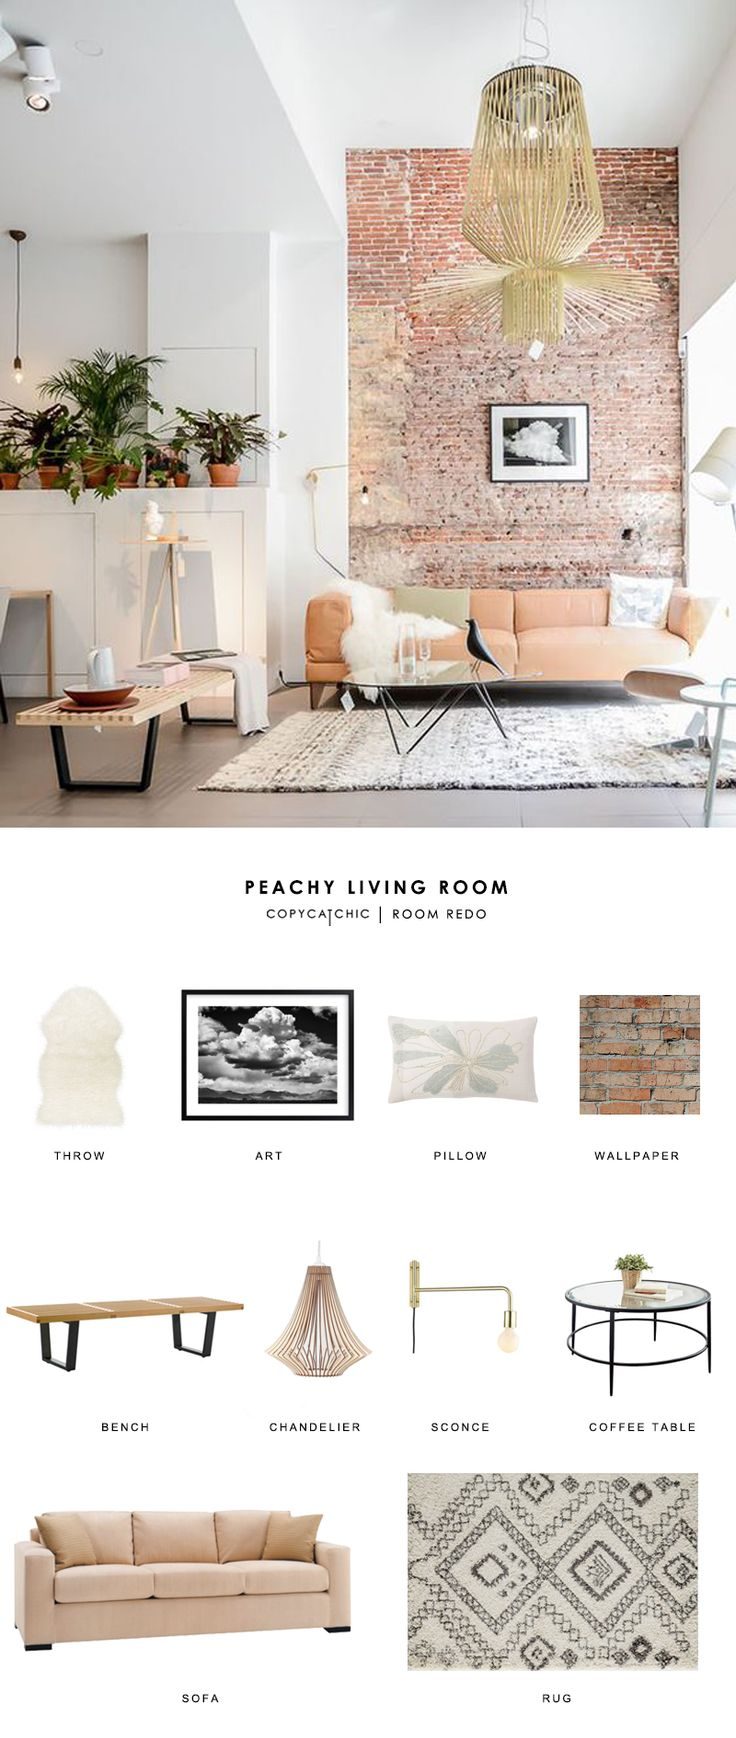 Peach Paint Color For Living Room 25 Best Ideas About Peach Living Rooms On Pinterest Grey